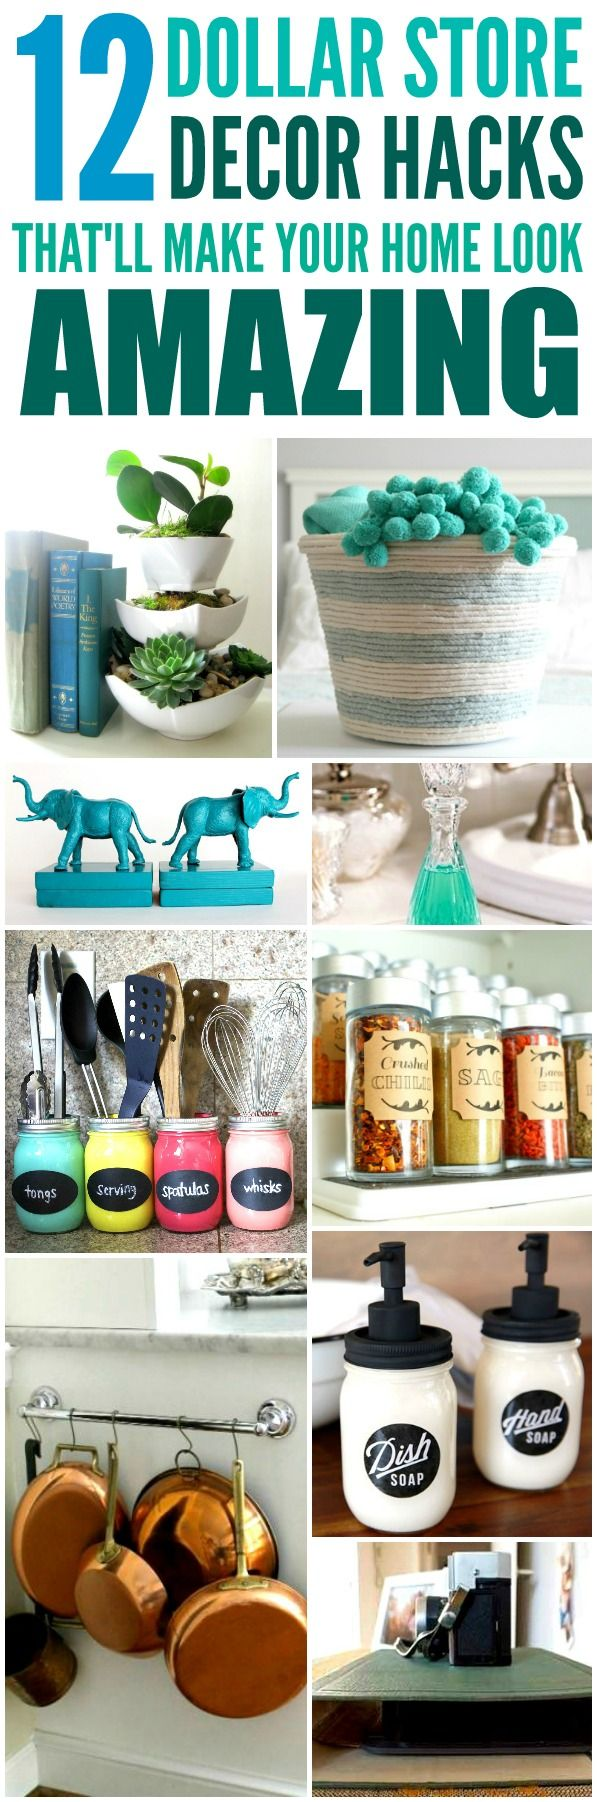 12 cheap and easy dollar store decor hacks thatll make your home look amazing - Best Stores For Home Decor